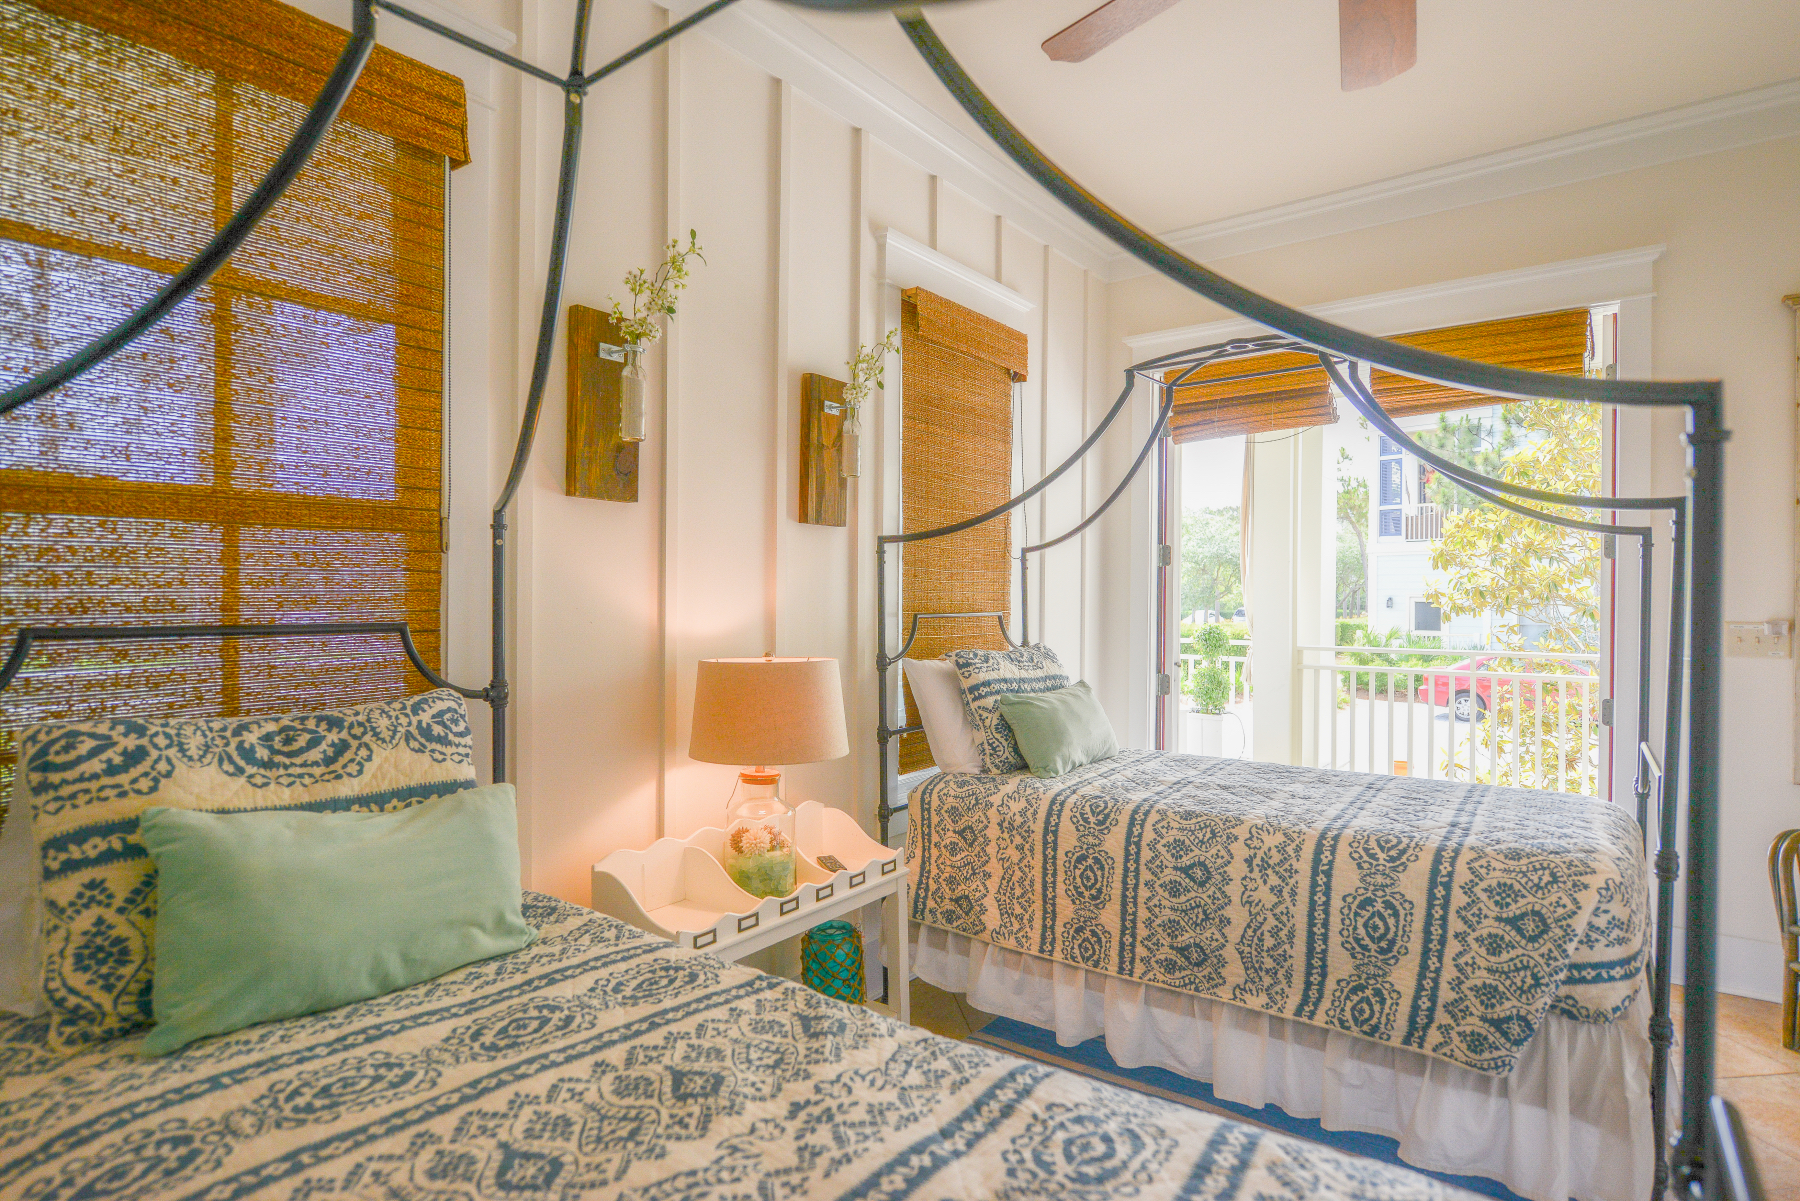 Watercolor florida beach house twin canopy bed.jpeg